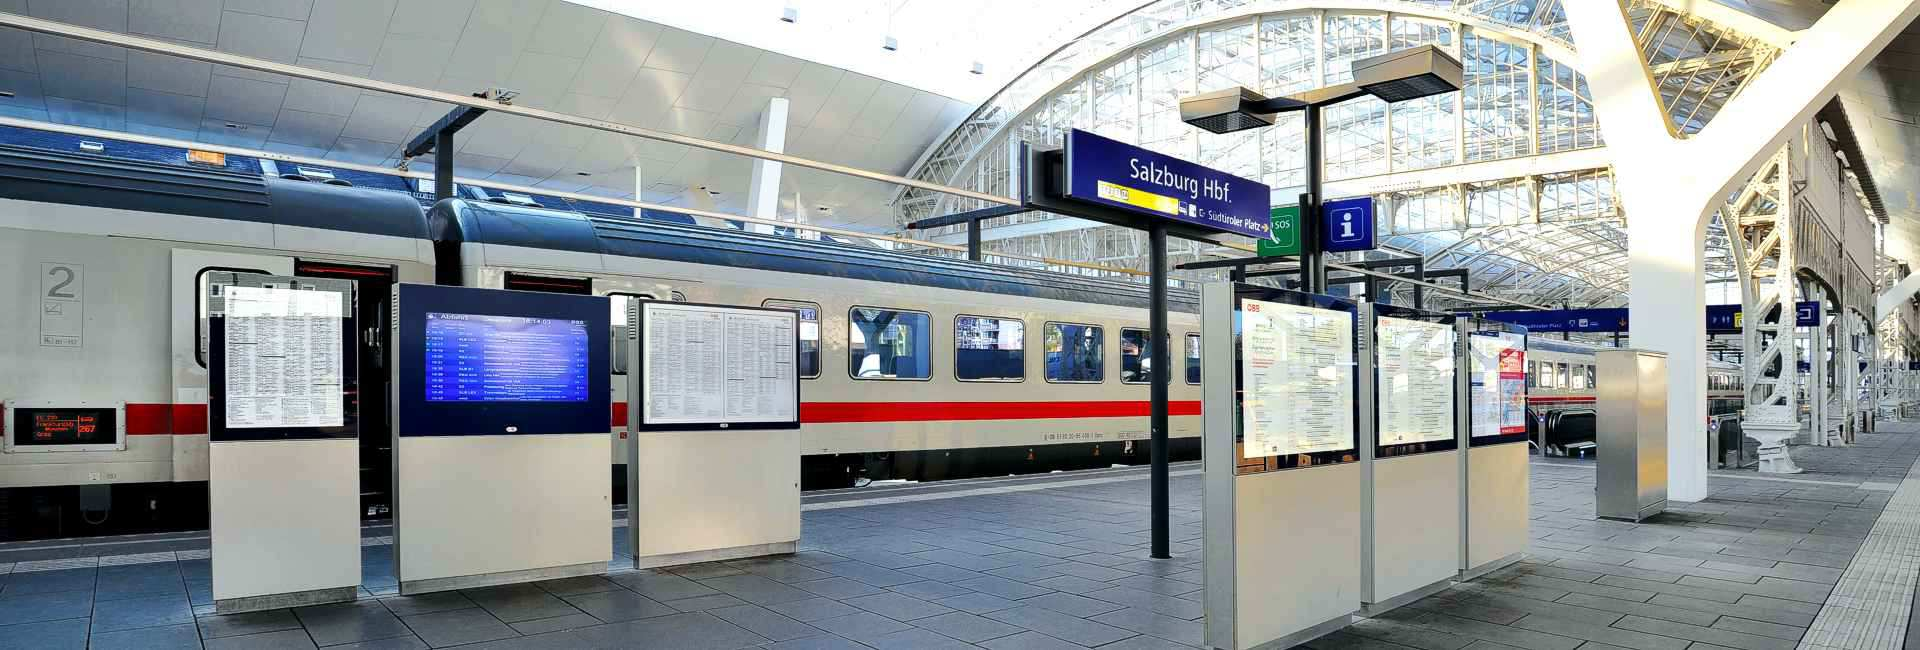 Showcases & Monitor-Showcases in a Design-line for the Central Station Salzburg.